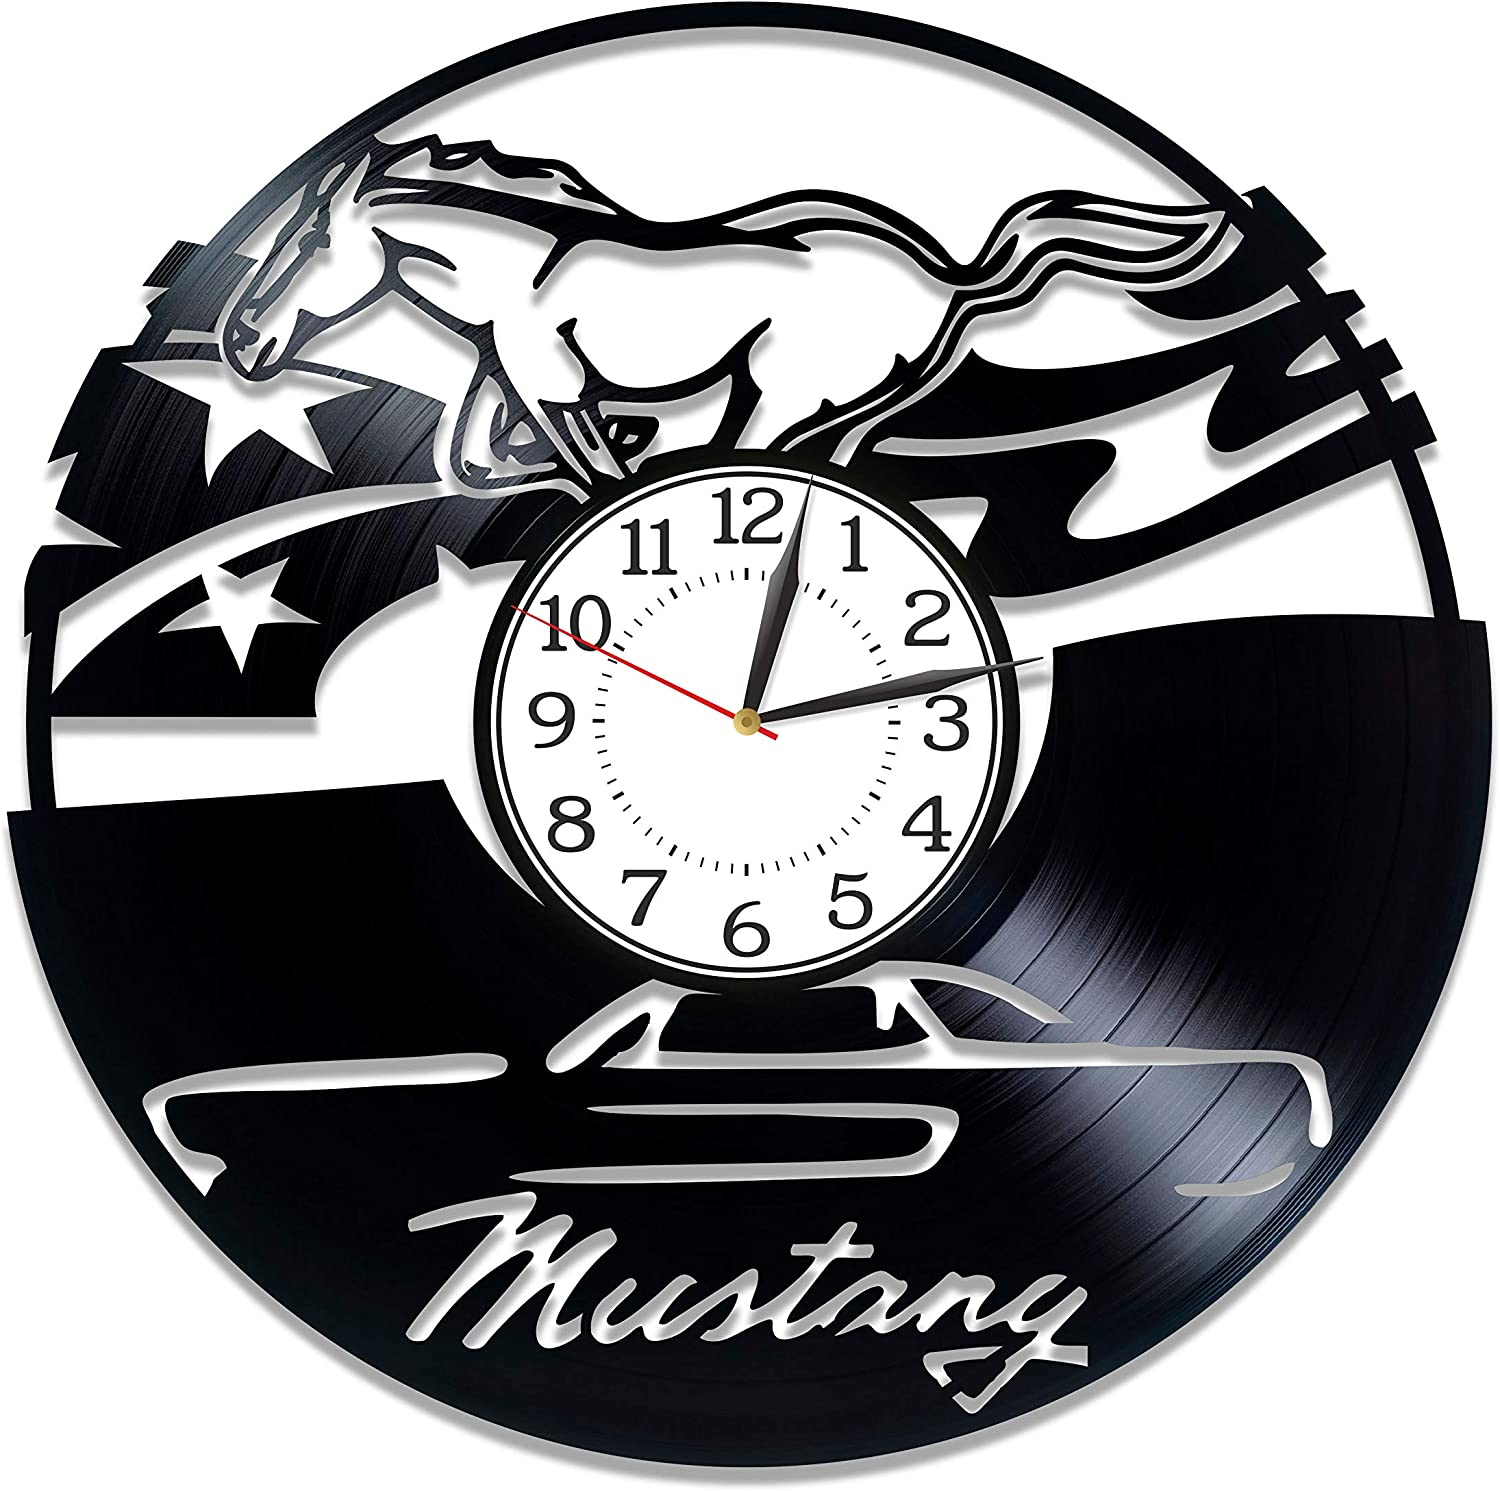 Kovides Birthday Gift Idea Ford Mustang Car Wall Clock 12 Inch for Man and Woman Speed Car Original Home Decor Ford Mustang Vinyl Record Wall Clock Sport Car Handmade Products